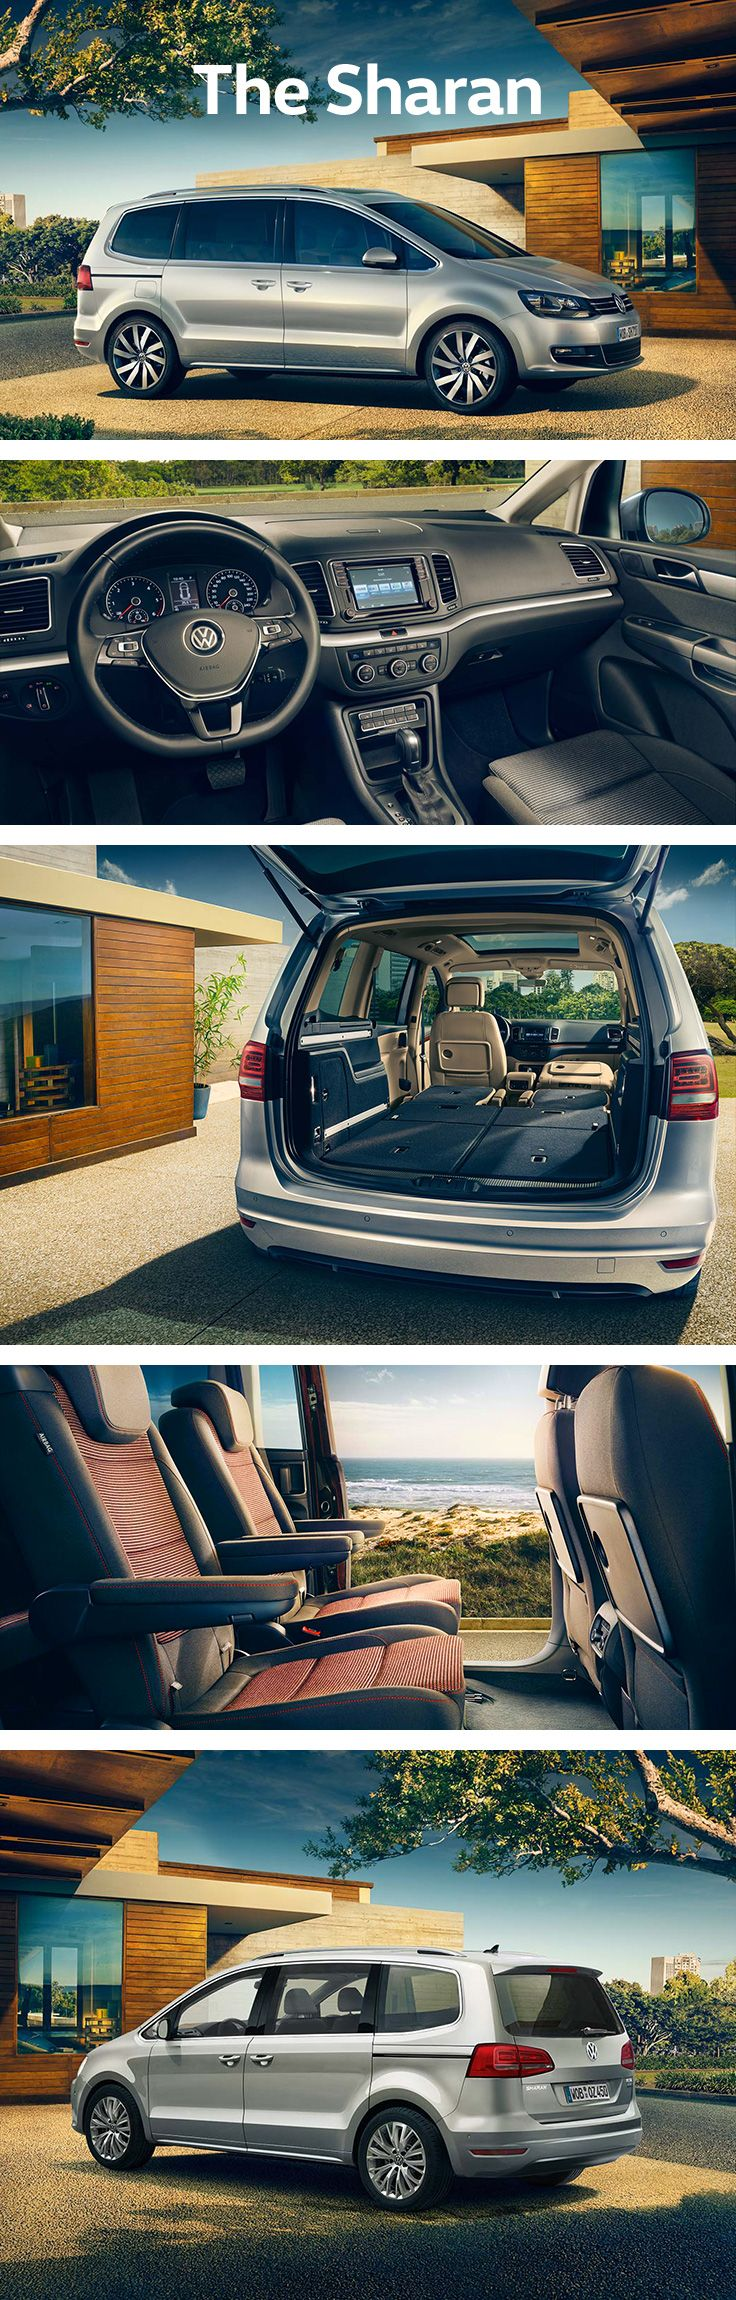 This family van has plenty of space: the up to seven seats can be flexibly positioned to gain an interior volume ranging between 300 and 2,430 litres. Thanks to the optional electric sliding doors, loading and unloading items as well as getting in and out of the Volkswagen Sharan is more comfortable and convenient. The EasyFold function comes as standard and enables the second row of seats or optional third row to be easily folded down for creating a larger loading space.